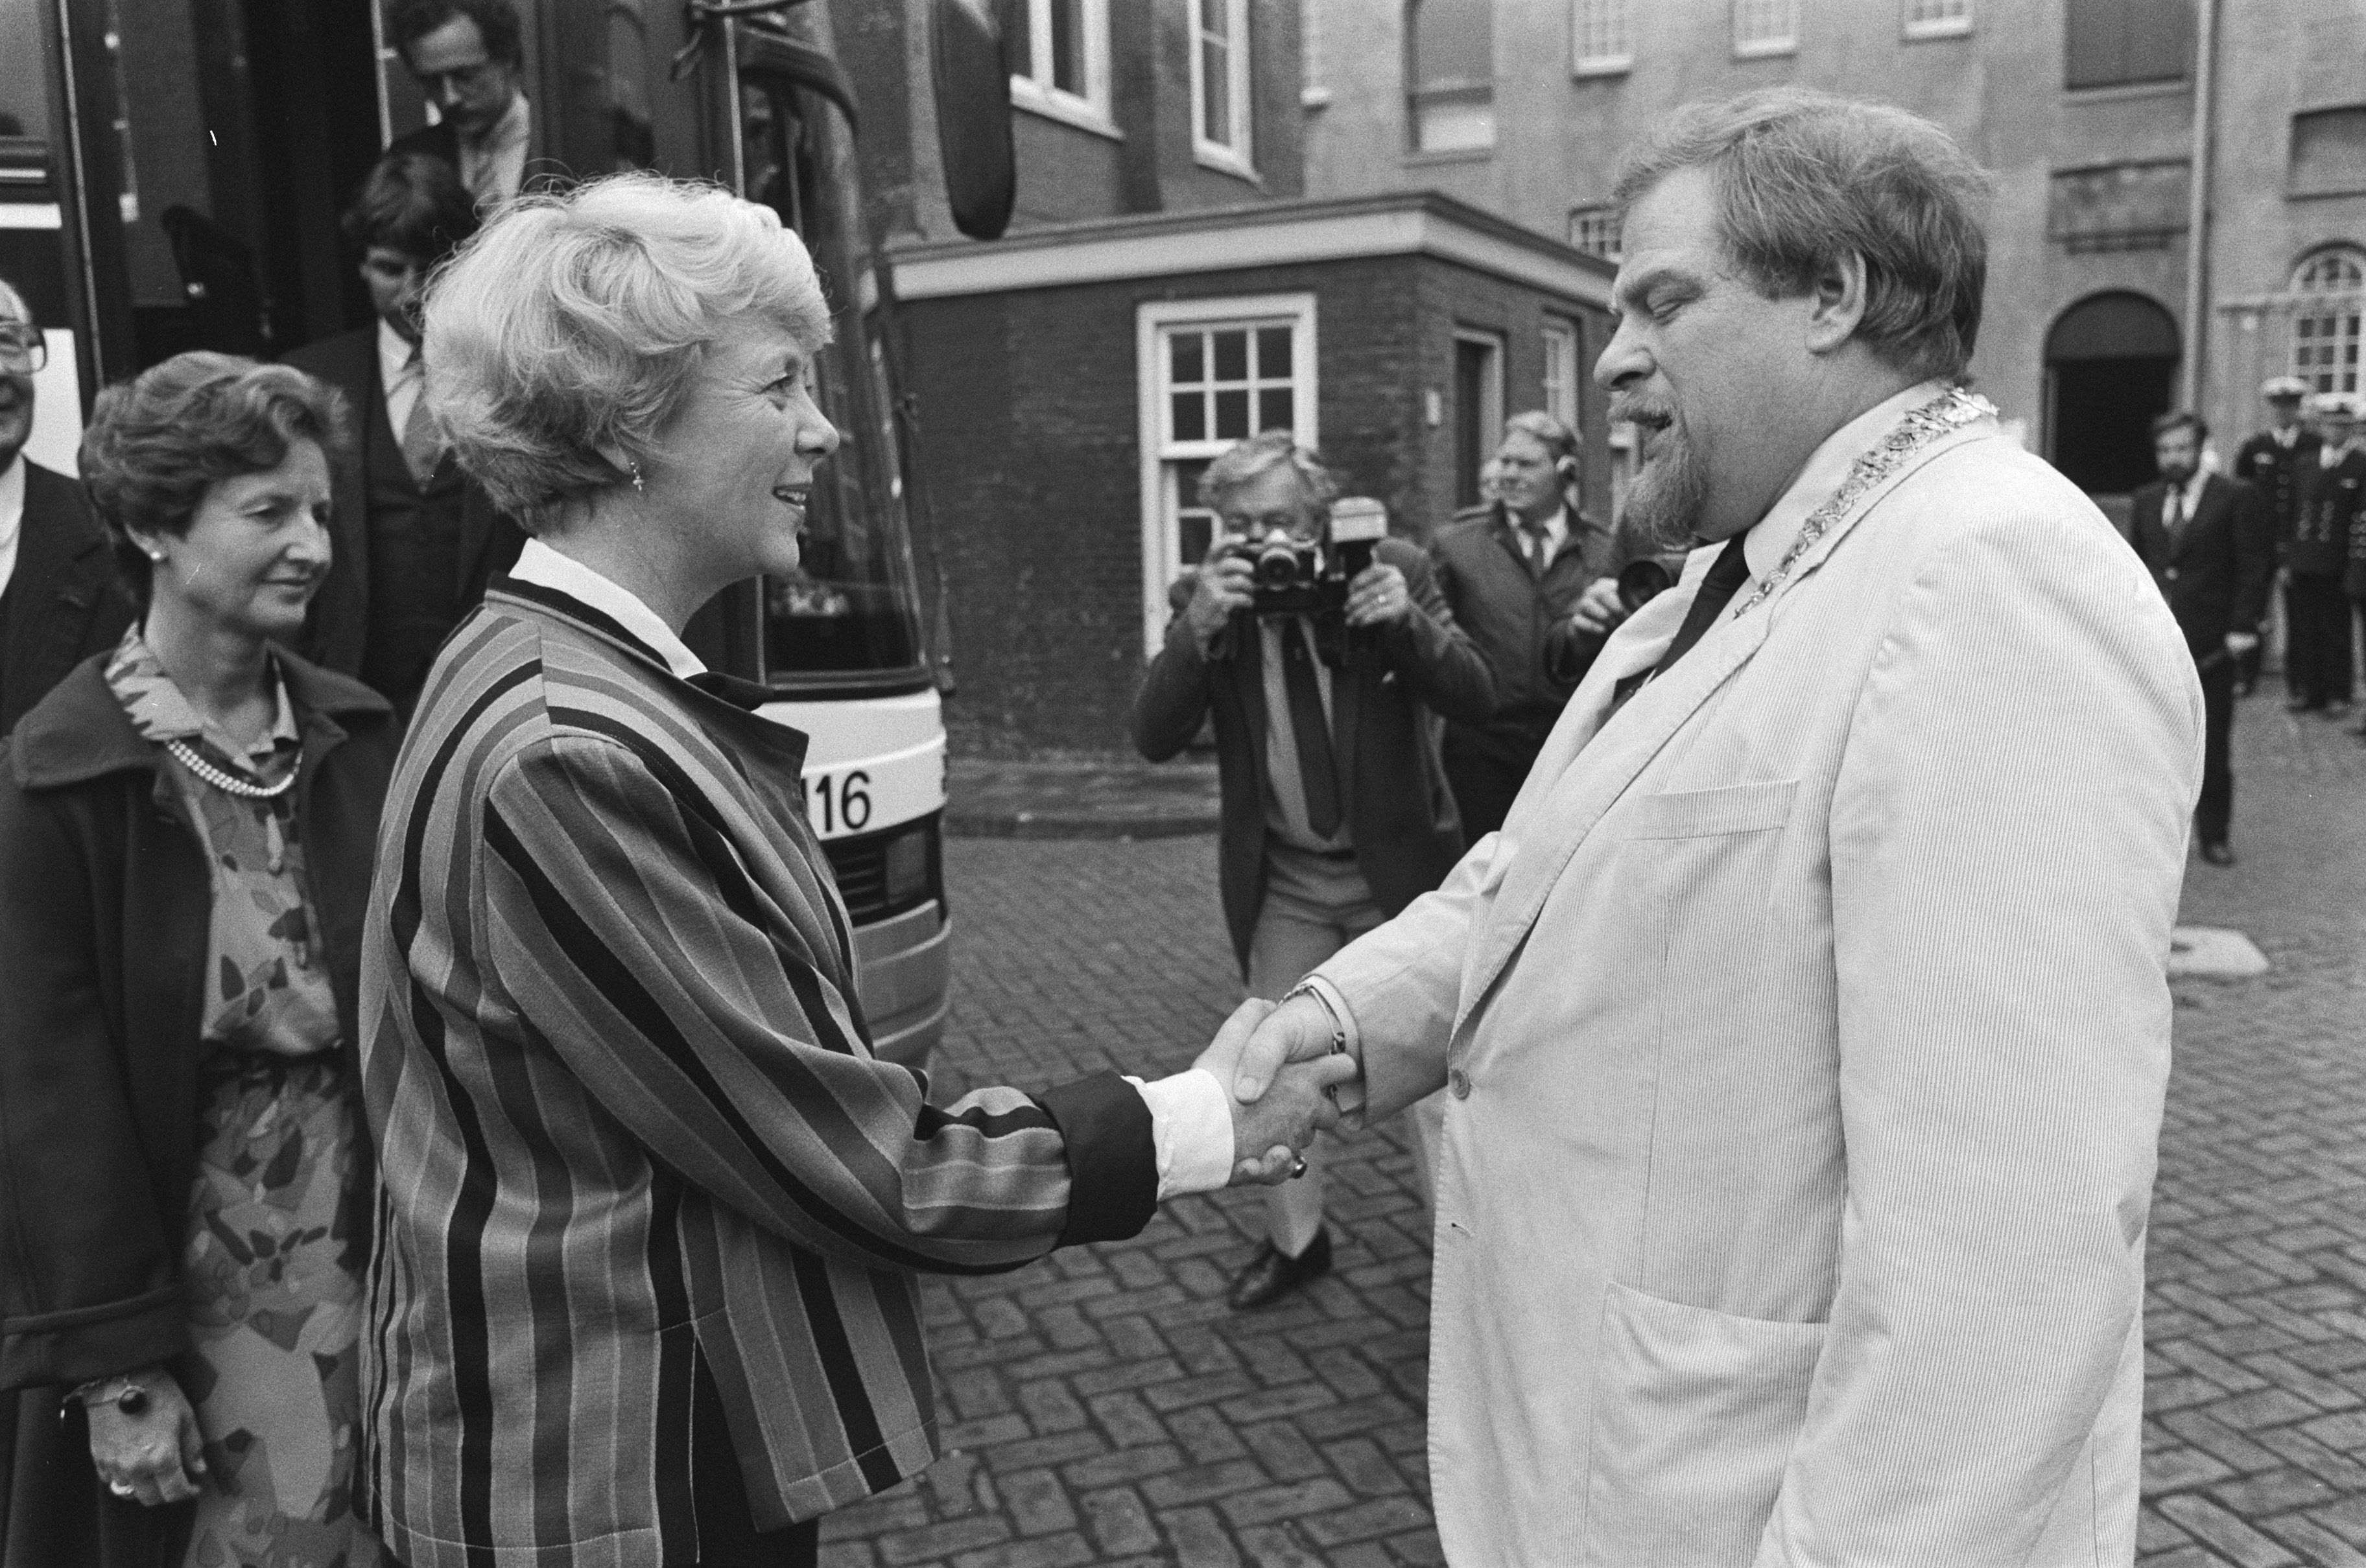 Icelandic President Ms. Vigdís Finnbogadóttir is greeted by Councilor Schaefer at the Maritime Museum in Amsterdam